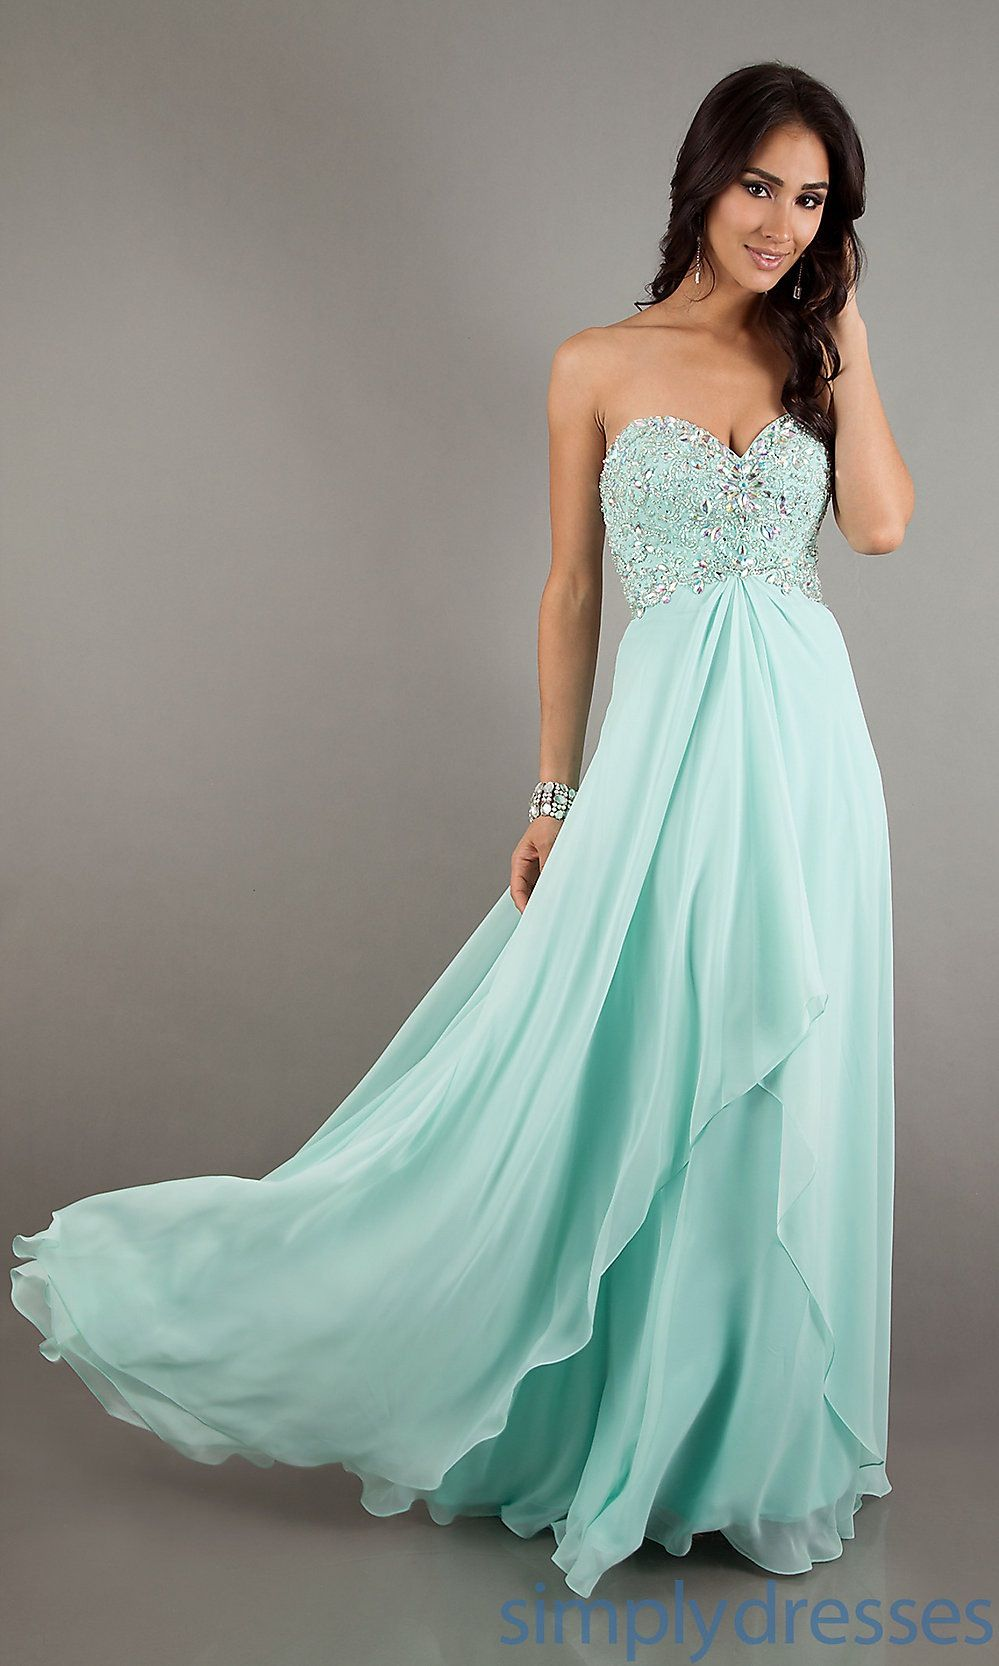 I wish it would be a little closer to neck and with sleeves | Prom ...